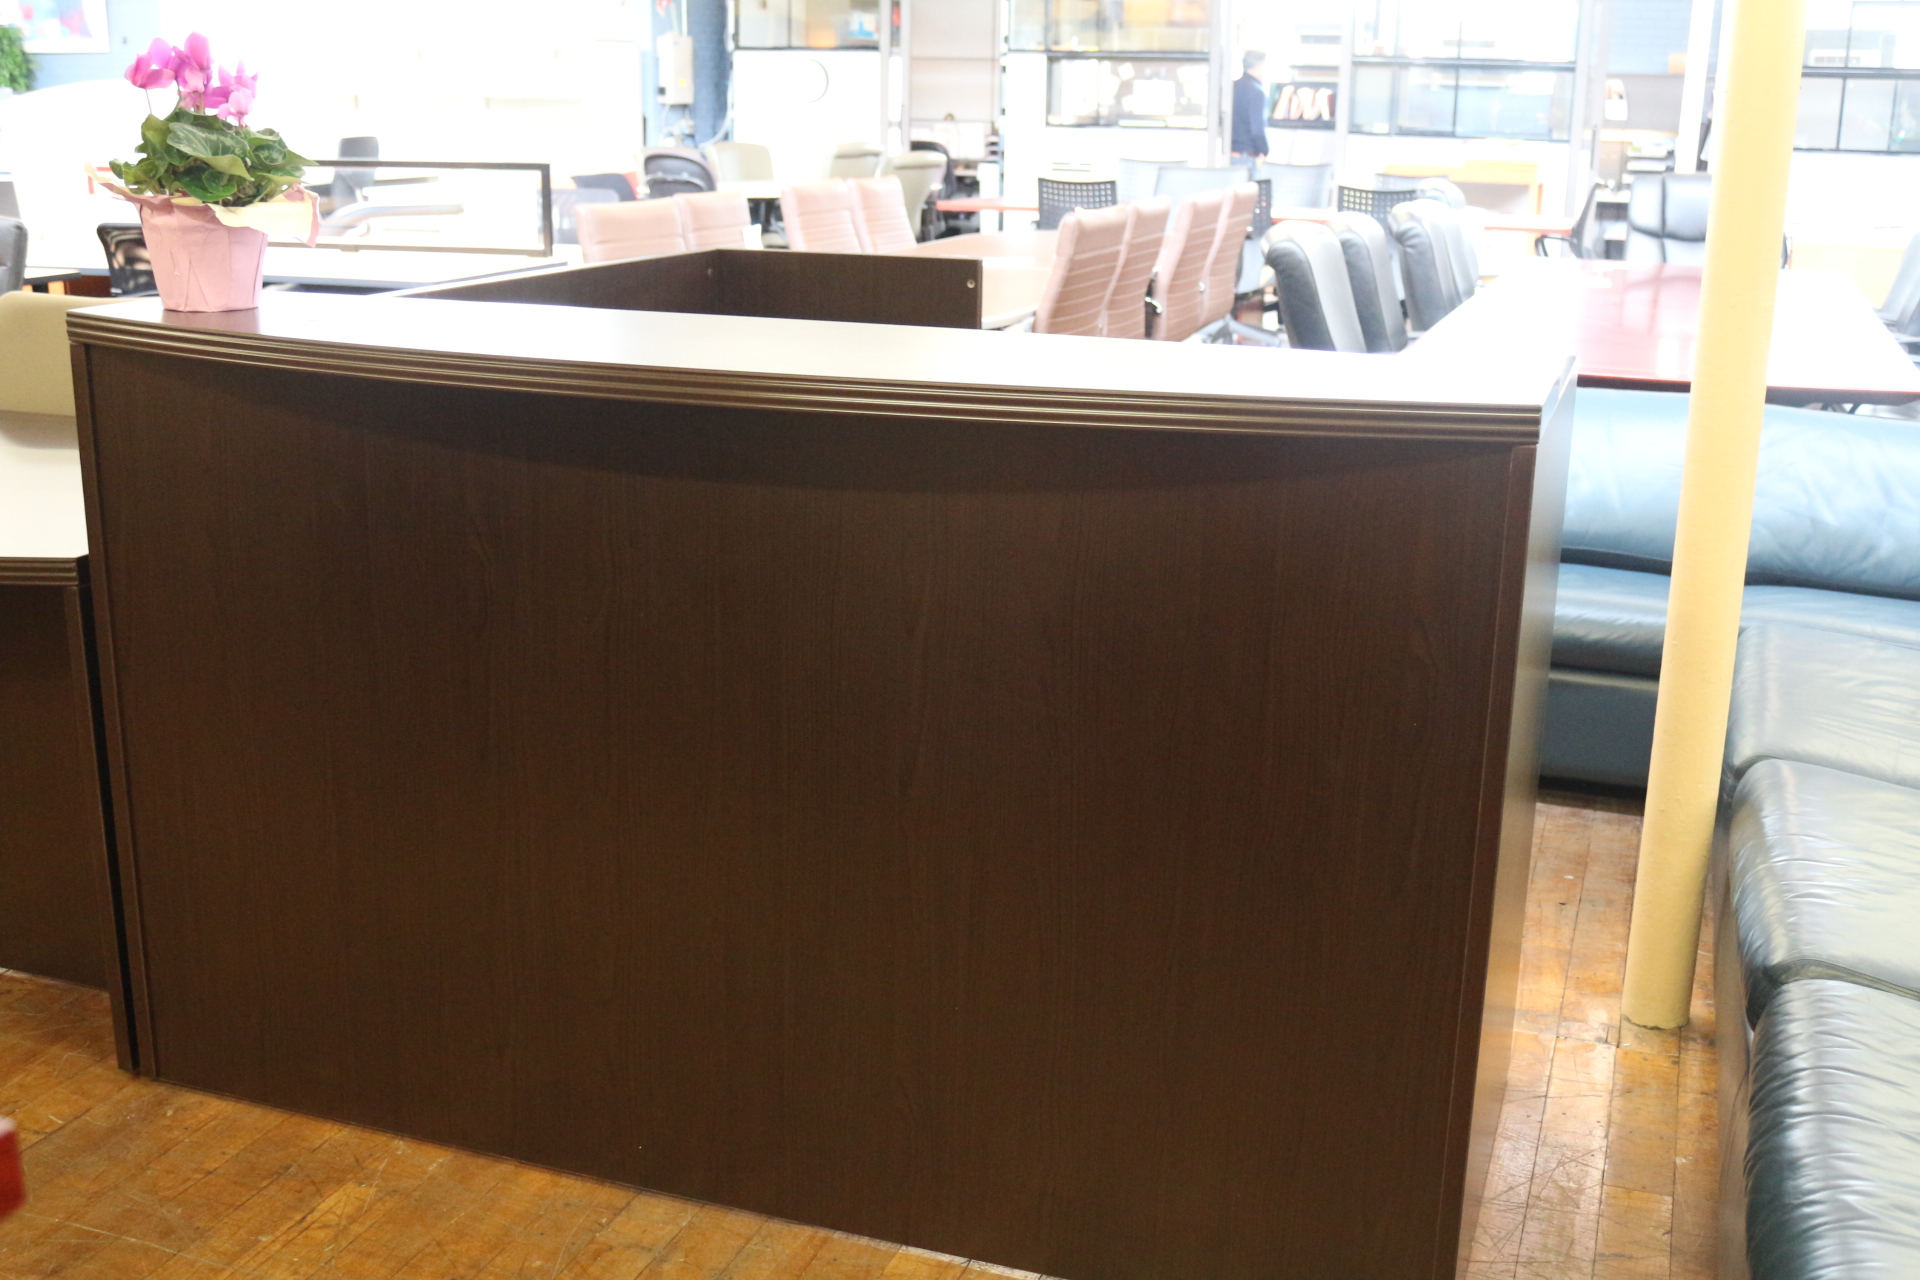 peartreeofficefurniture_peartreeofficefurniture_img_0872.jpg